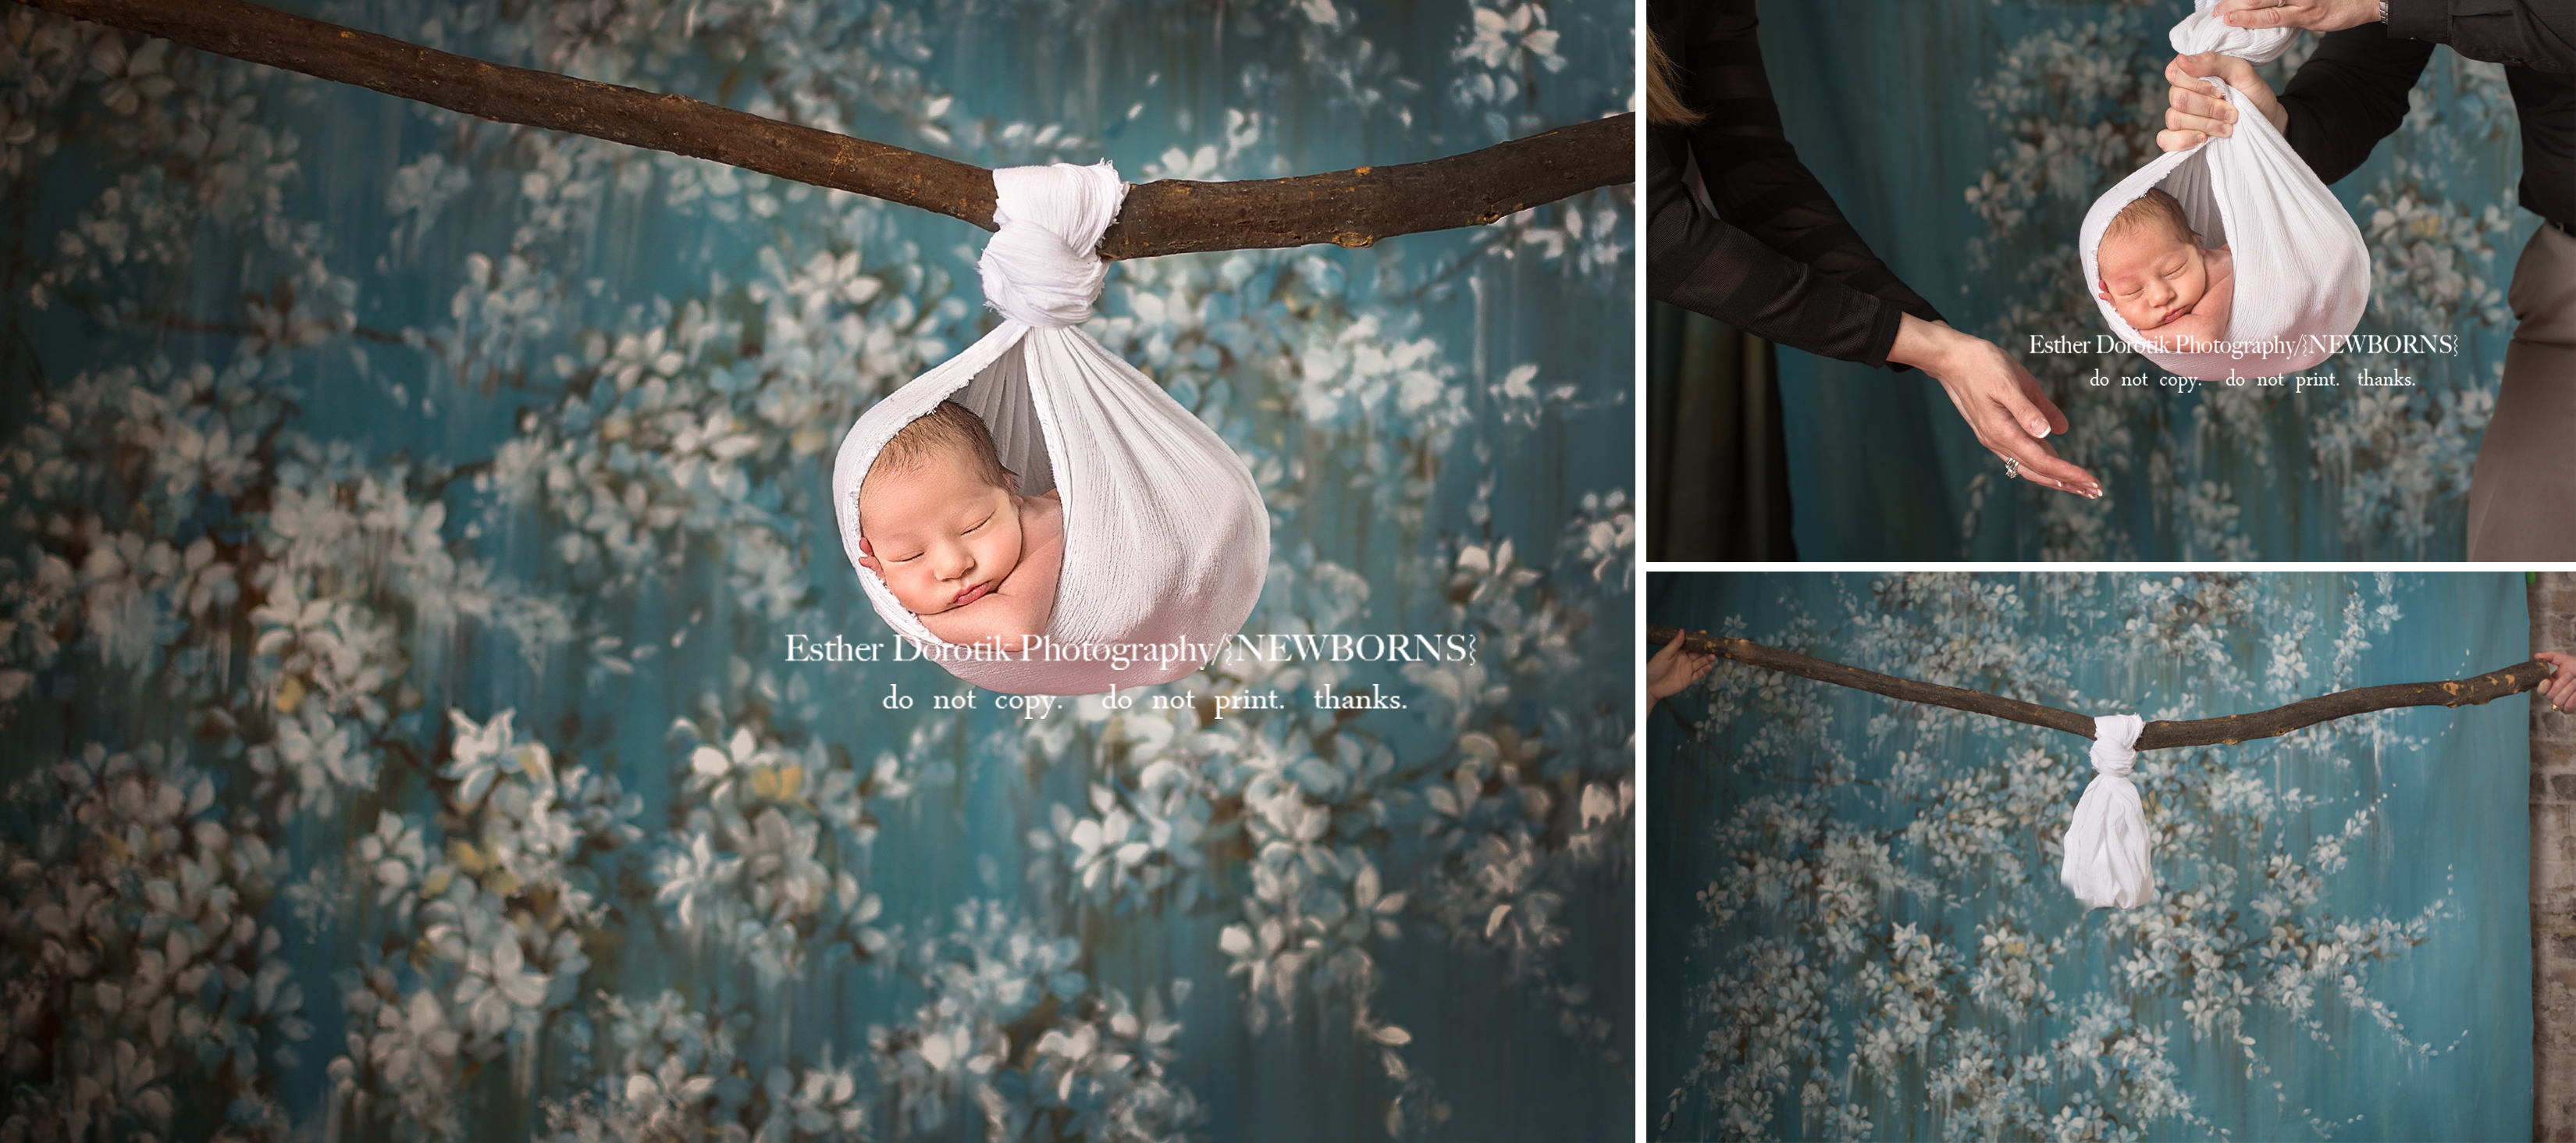 behind-the-scene-newborn-composite-of-baby-hanging-from-tree-by-Grapevine-newborn-photographer